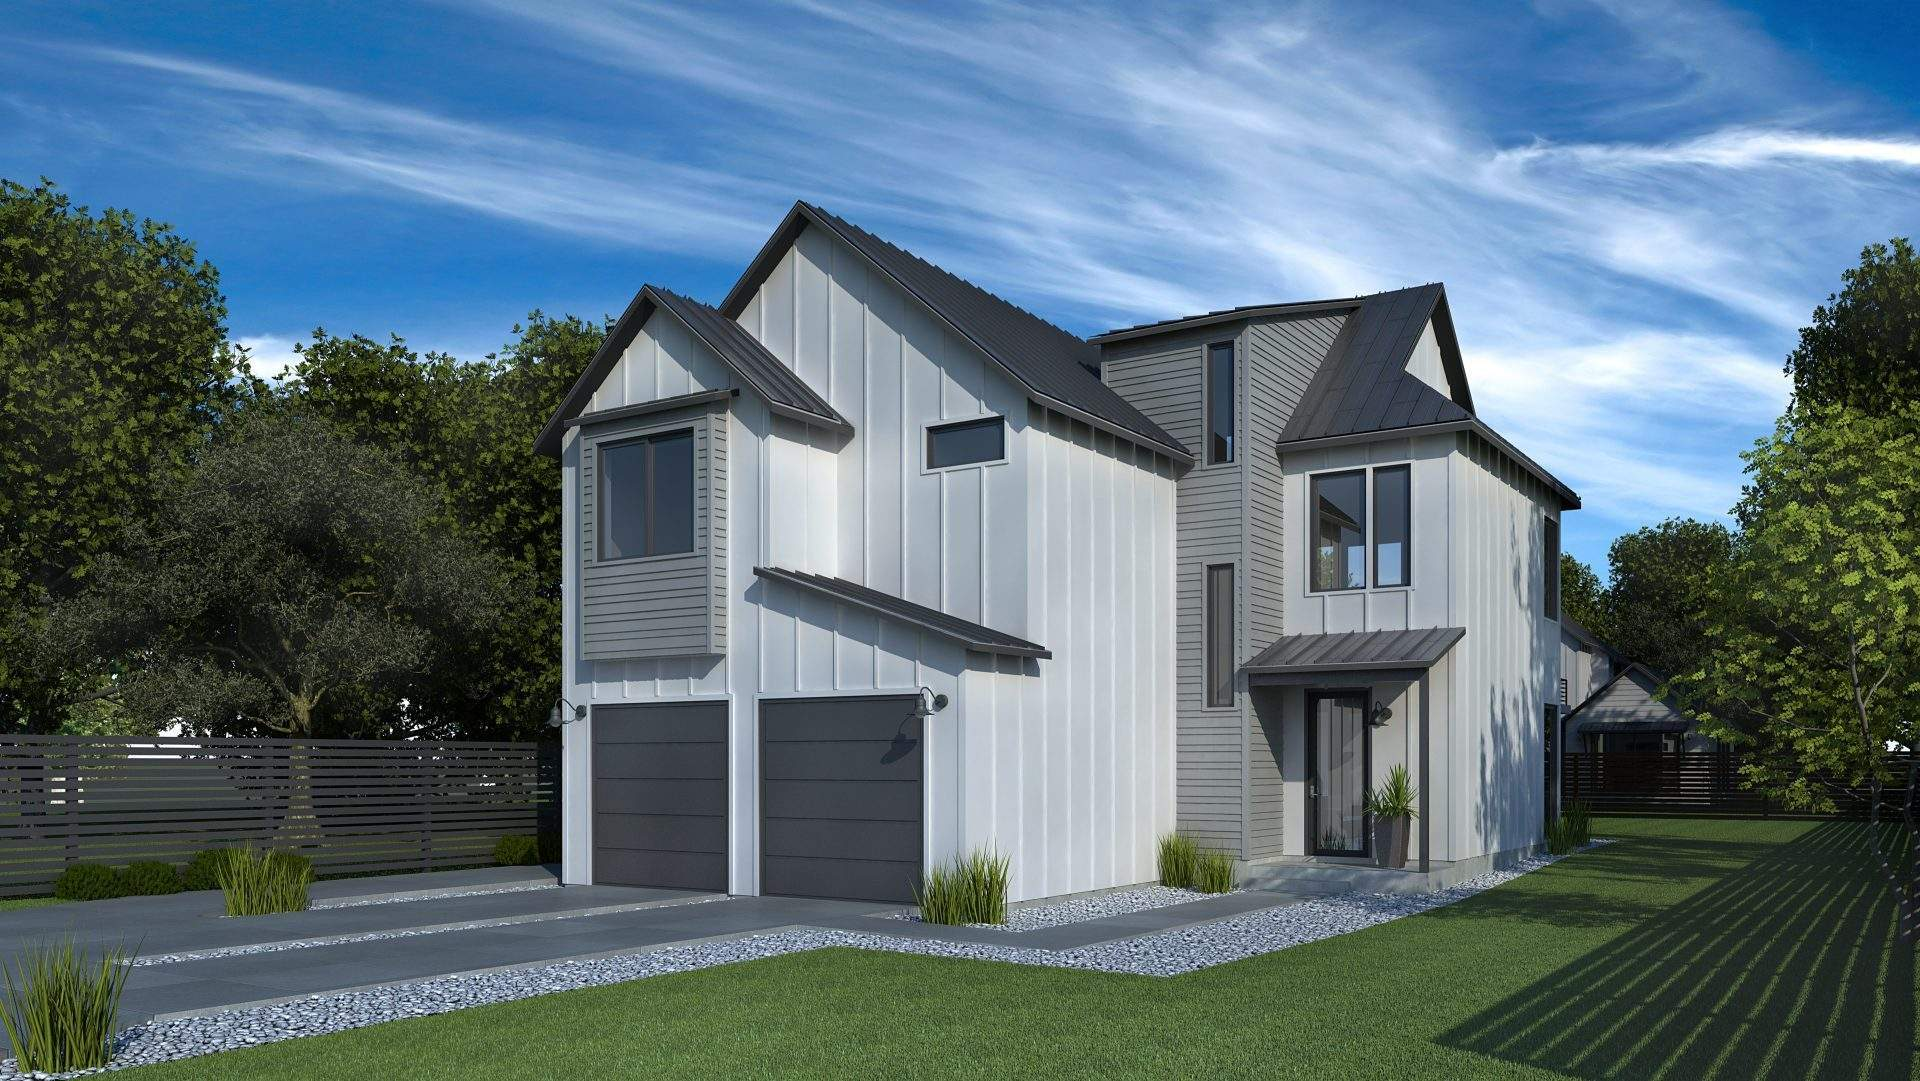 Main house-White with Grey accents